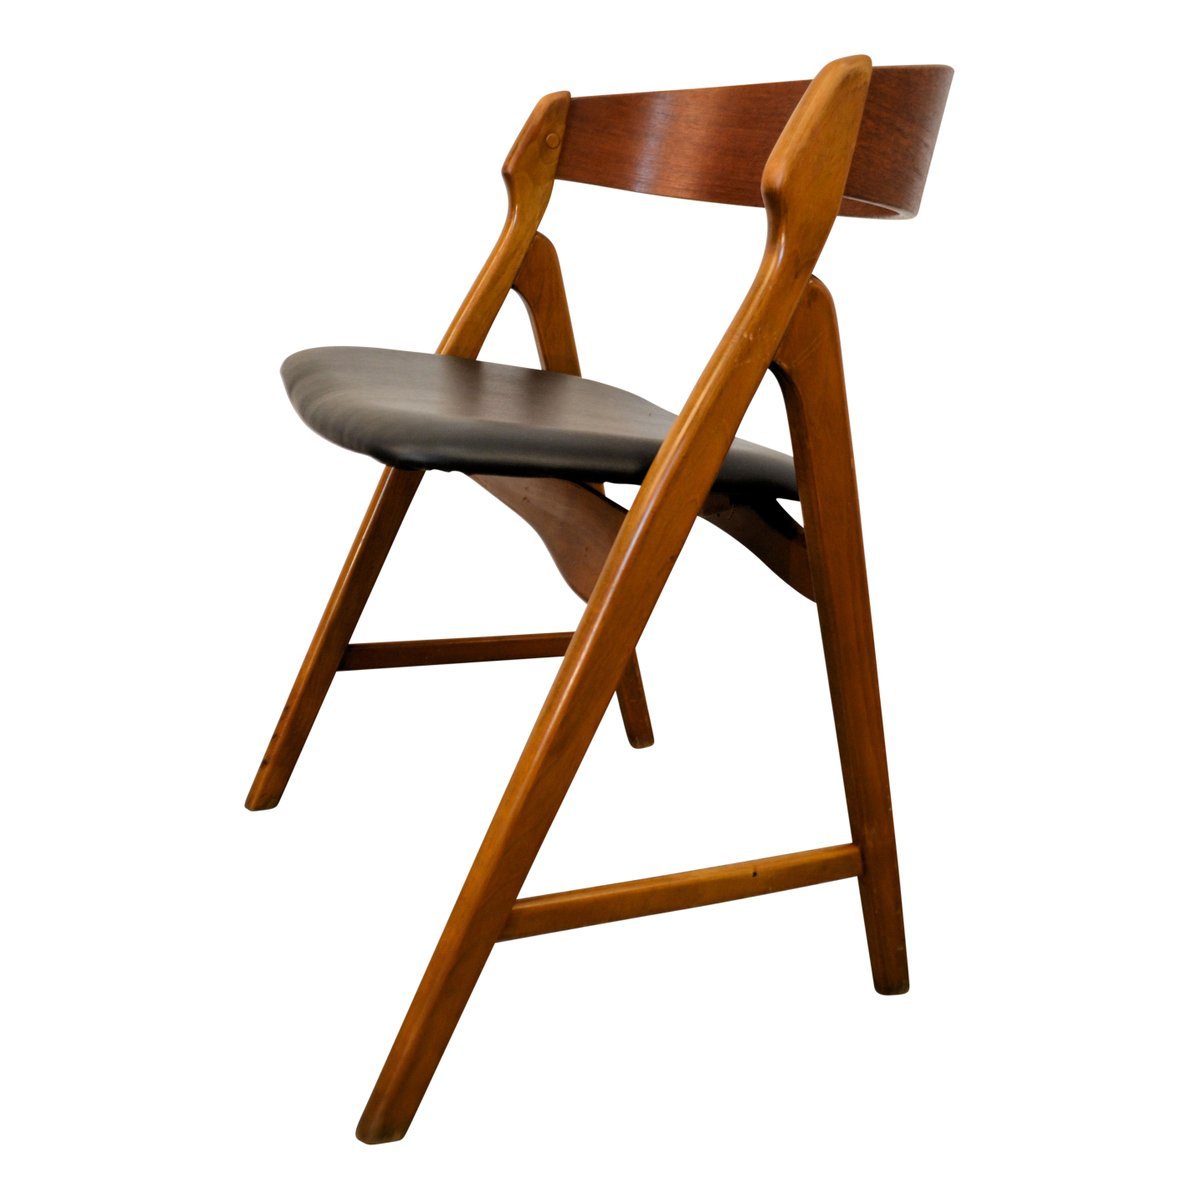 Vintage wooden dining chairs by henning kjaernulf for for Wooden dining chairs for sale